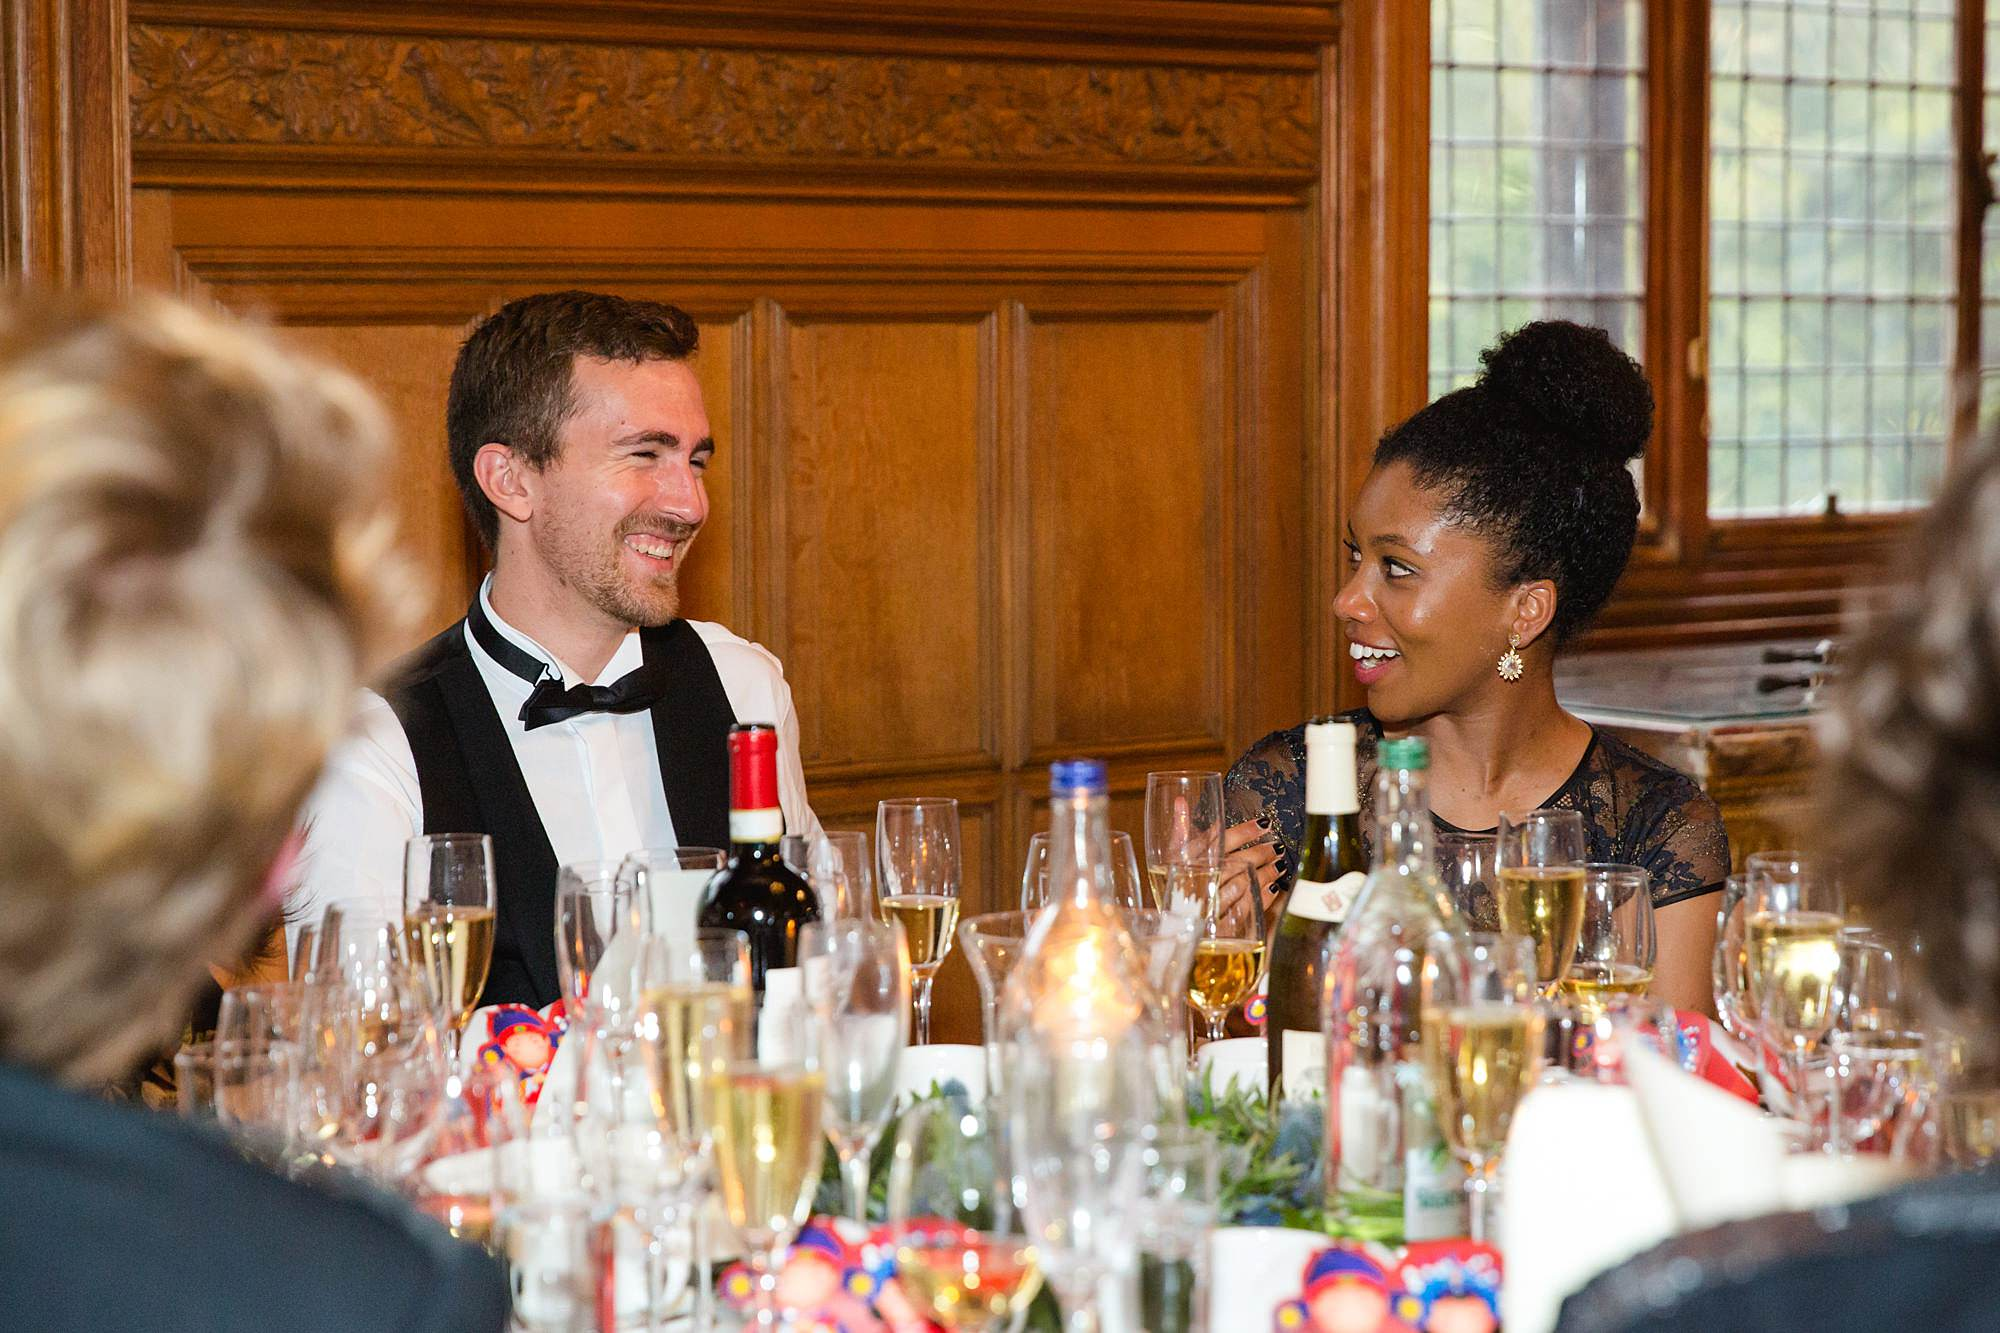 intimate wedding scotland guests chat over dinner